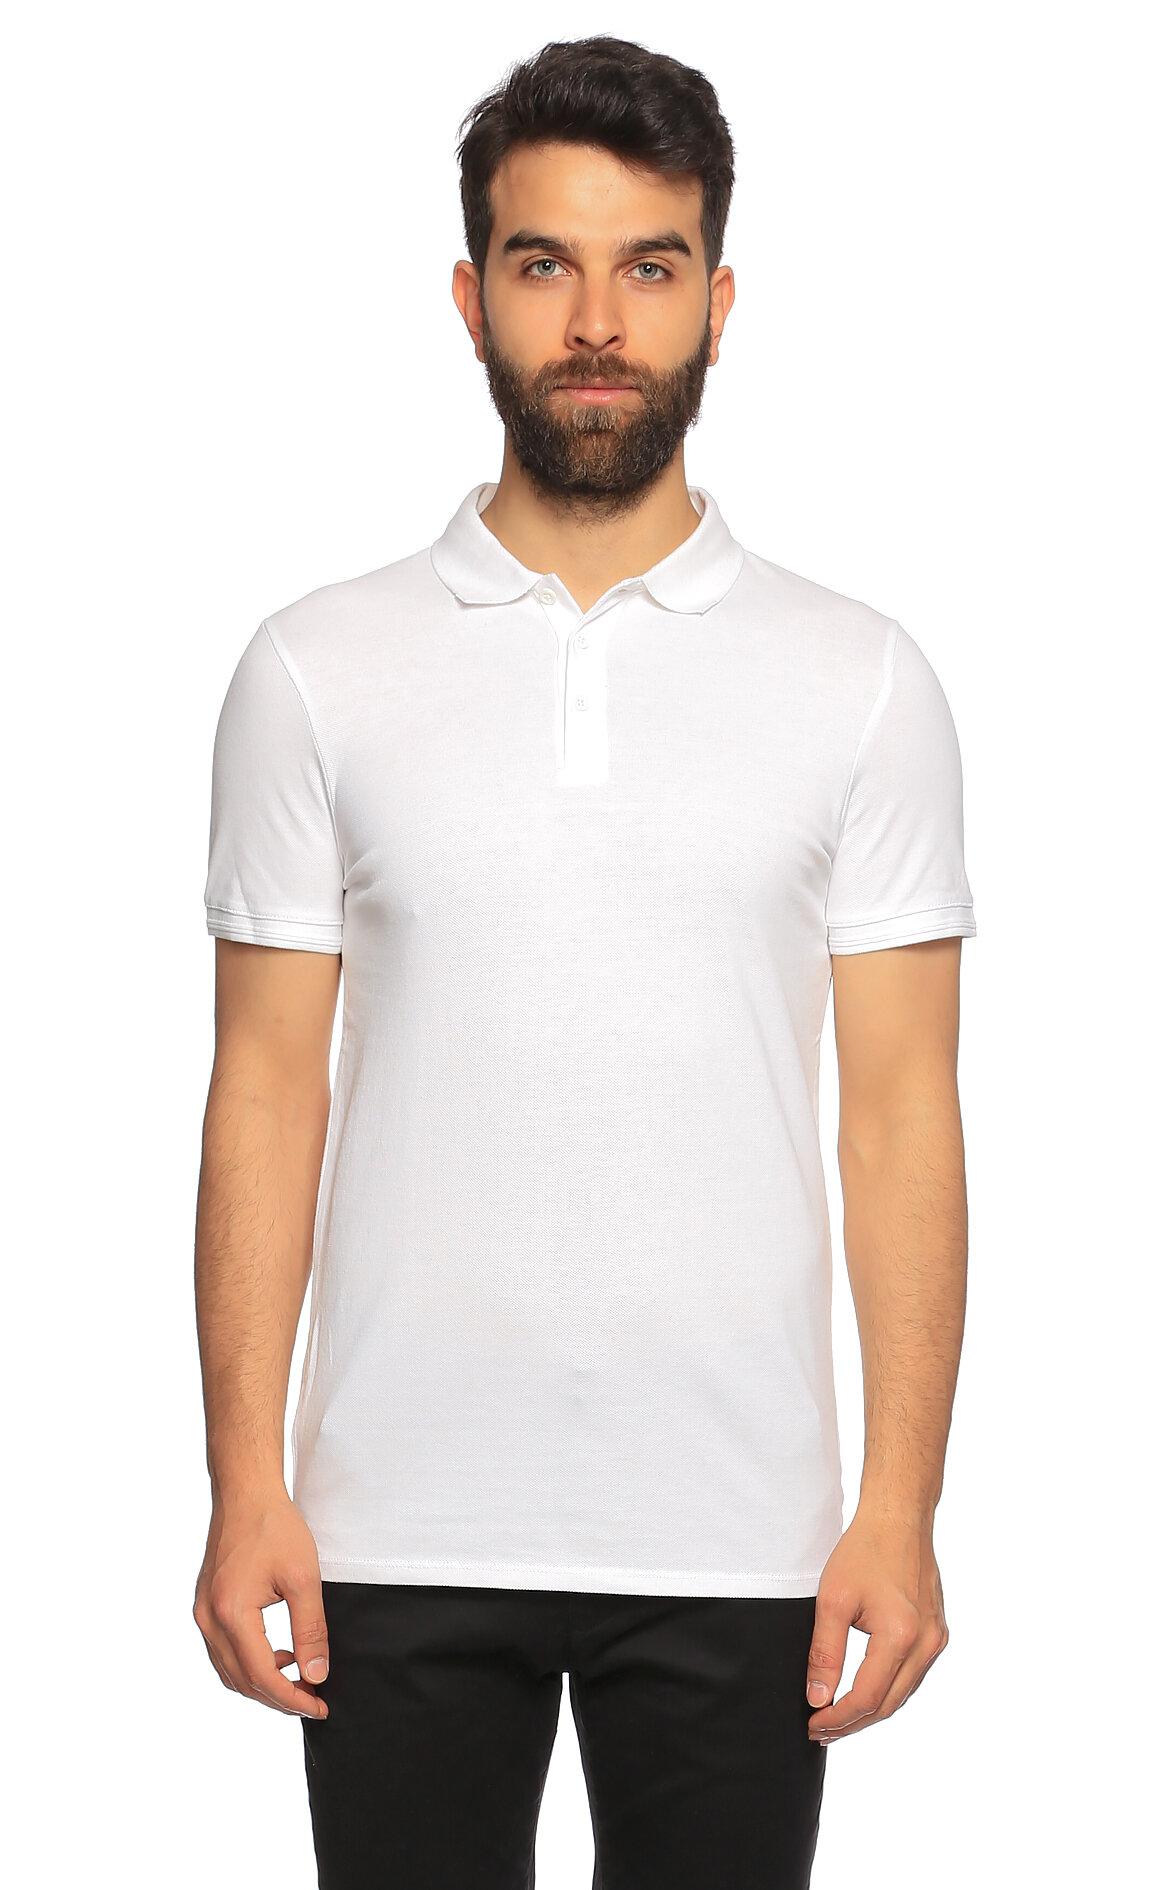 Casual Men-Casual Men Polo T-Shirt